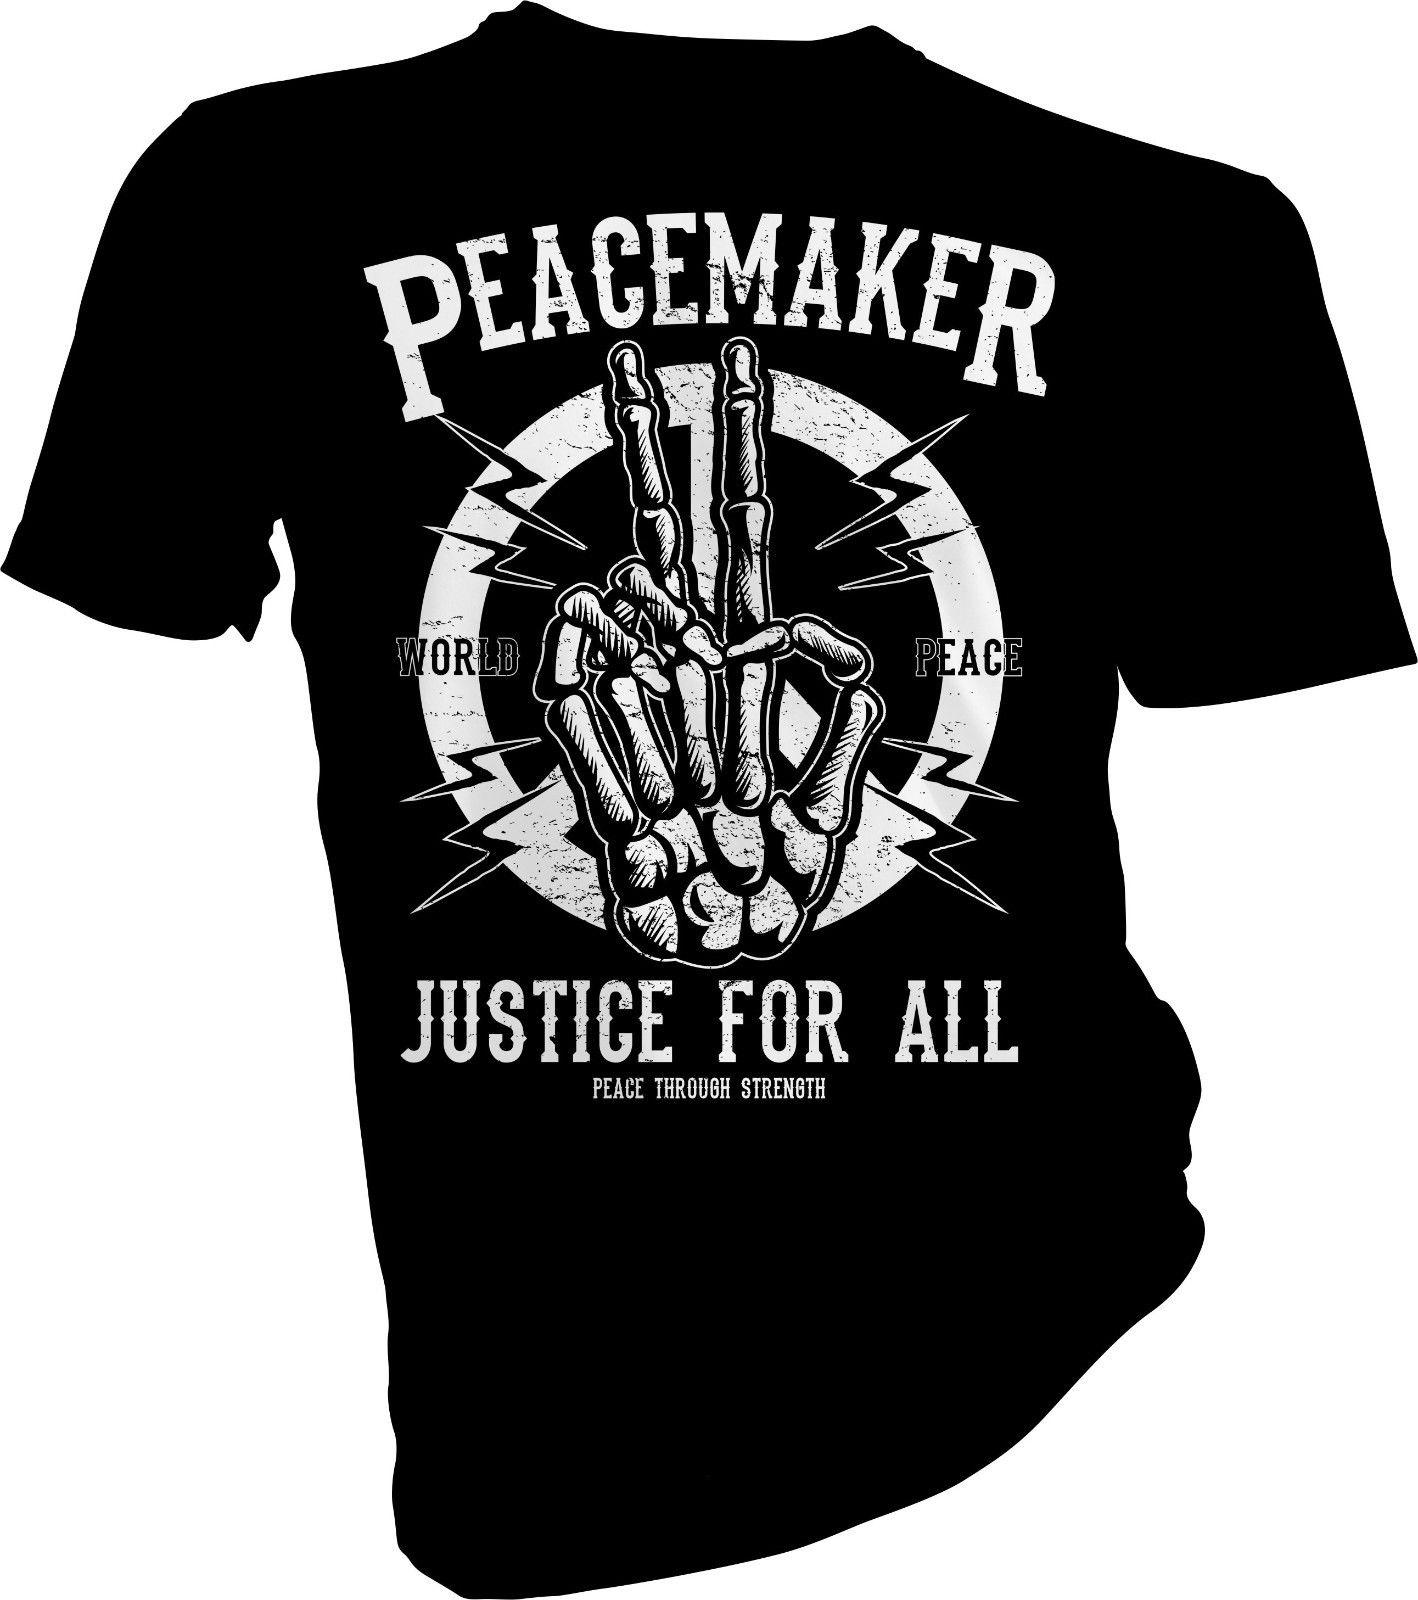 Peace Maker Justice Pour Tous, No War, No Nukes, Anti Adulte Enfants T-Shirt100% coton tee shirt2018 fashion t shirttops